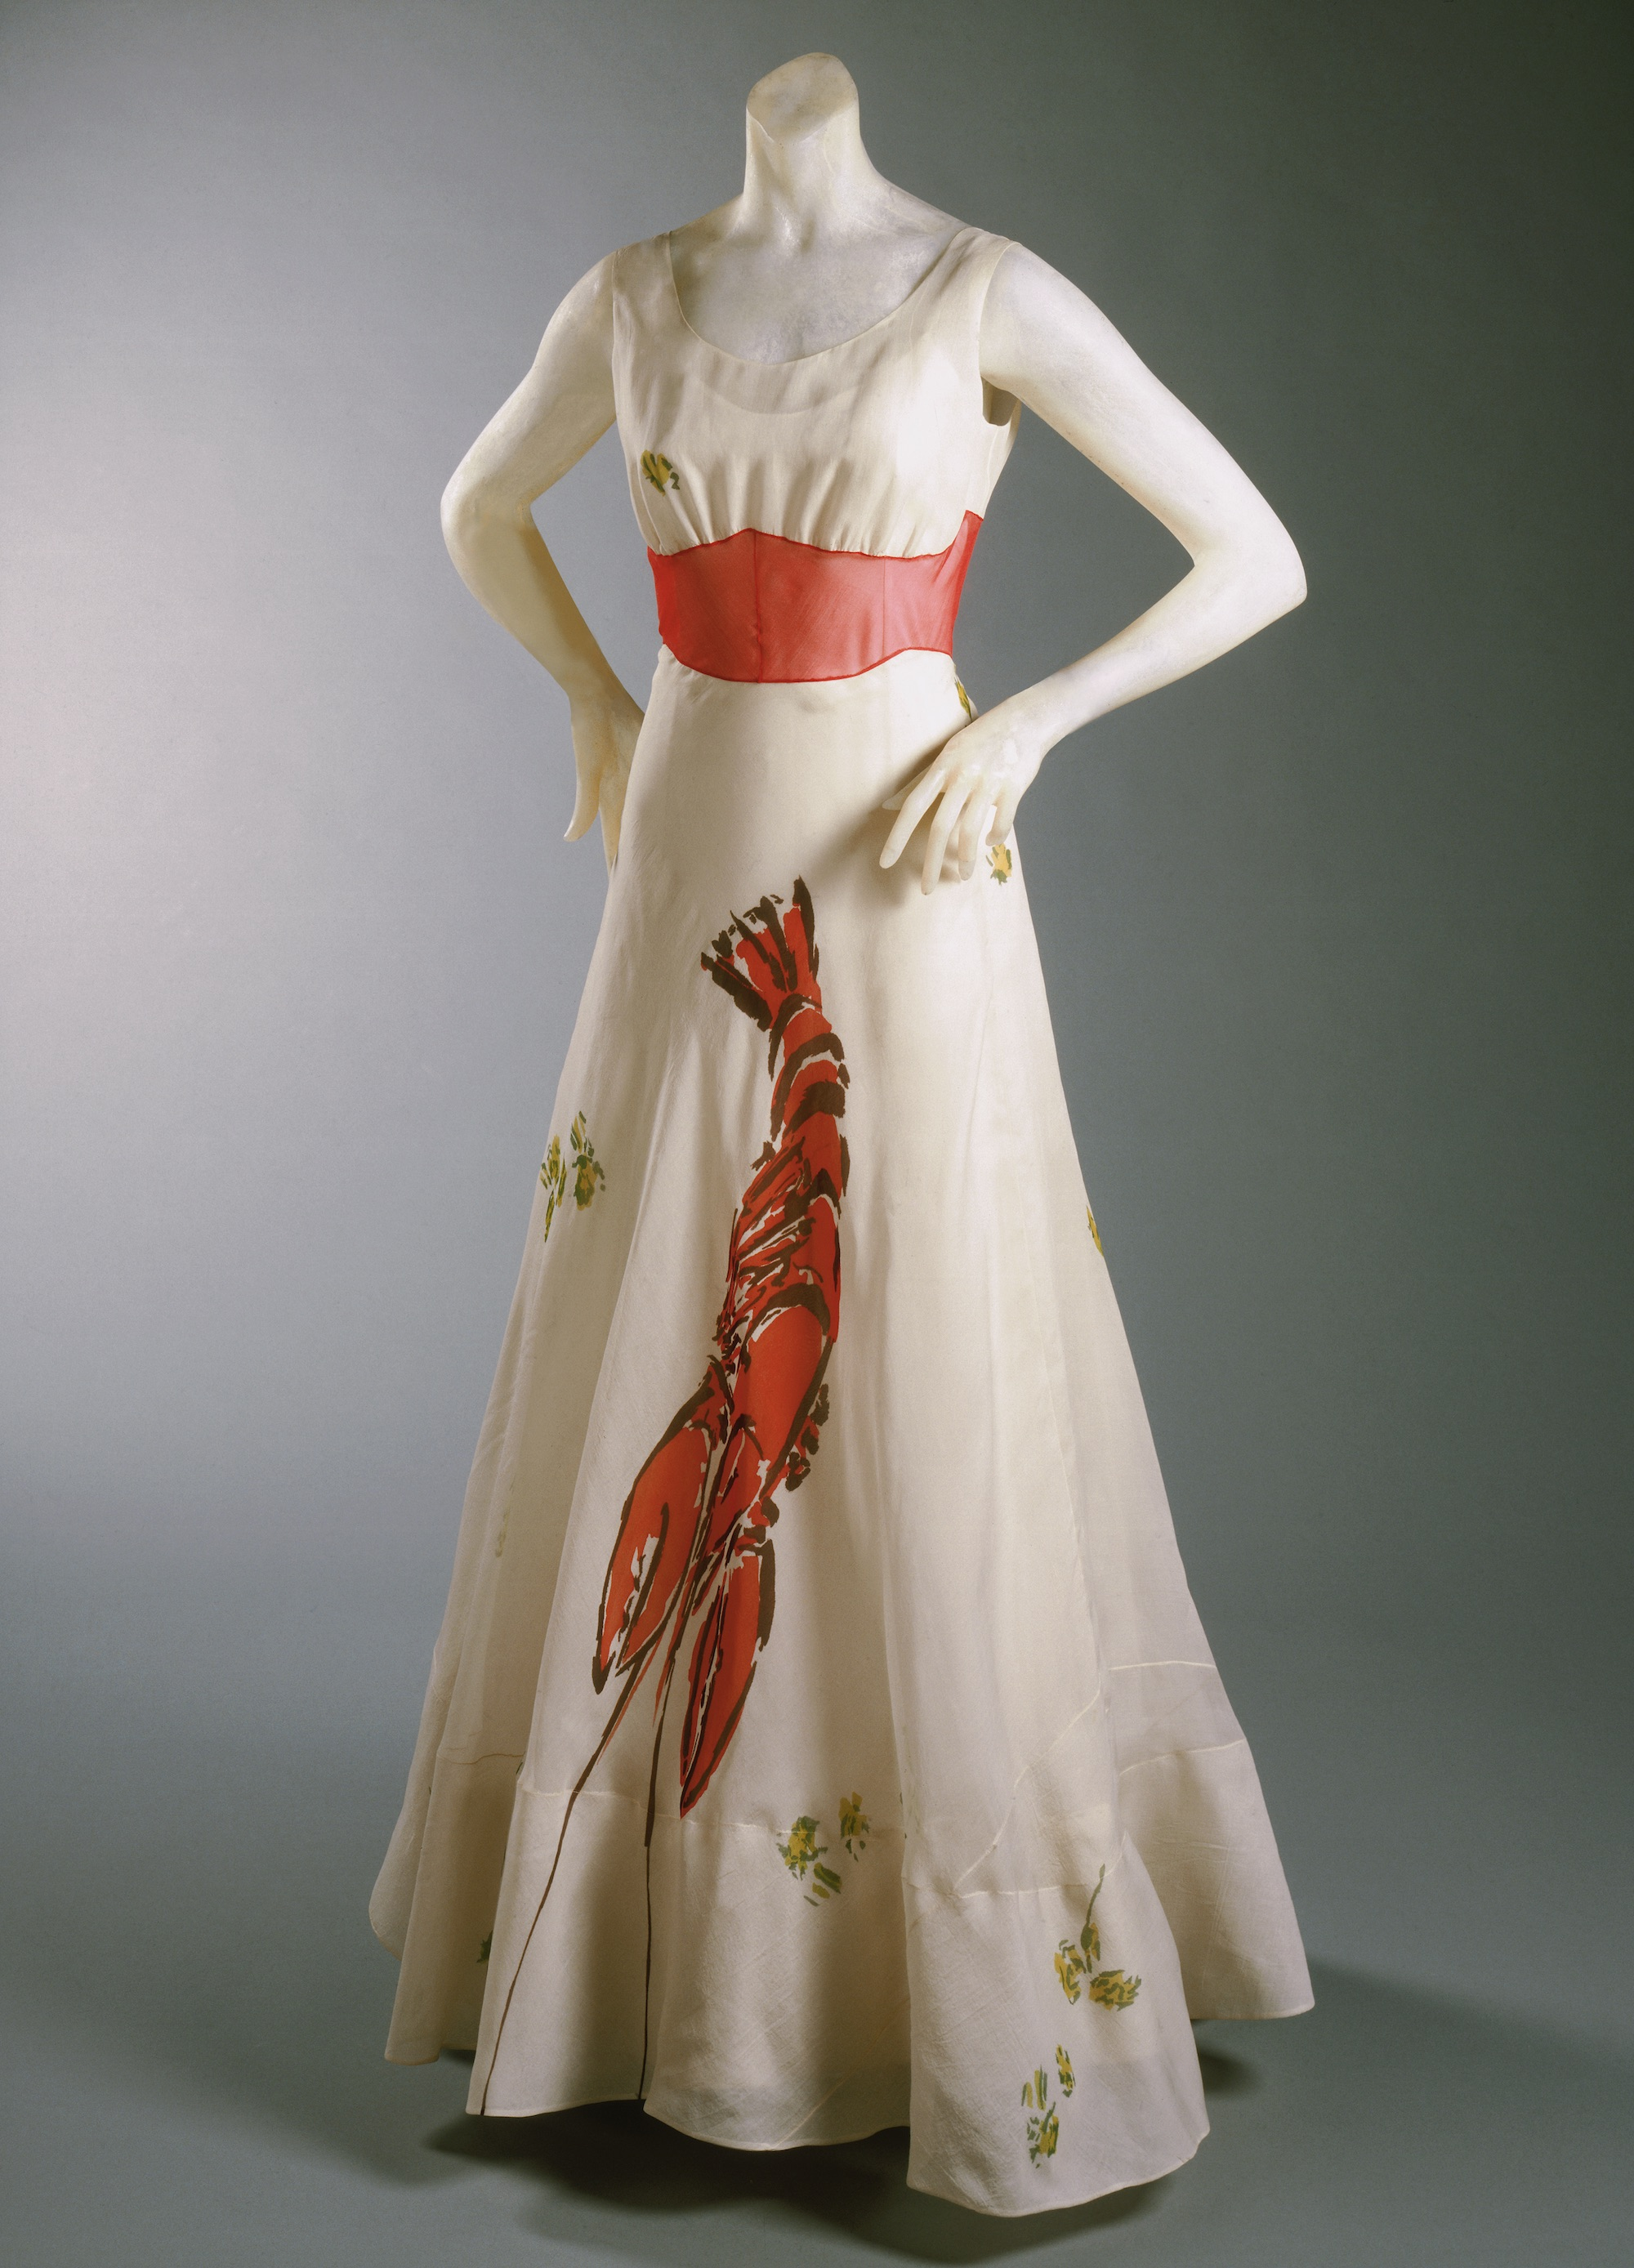 Salvador Dalí and Elsa Schiaparelli, Dinner Dress, 1937. Courtesy Philadelphia Museum of Art: Gift of Mme Elsa Schiaparelli, 1969